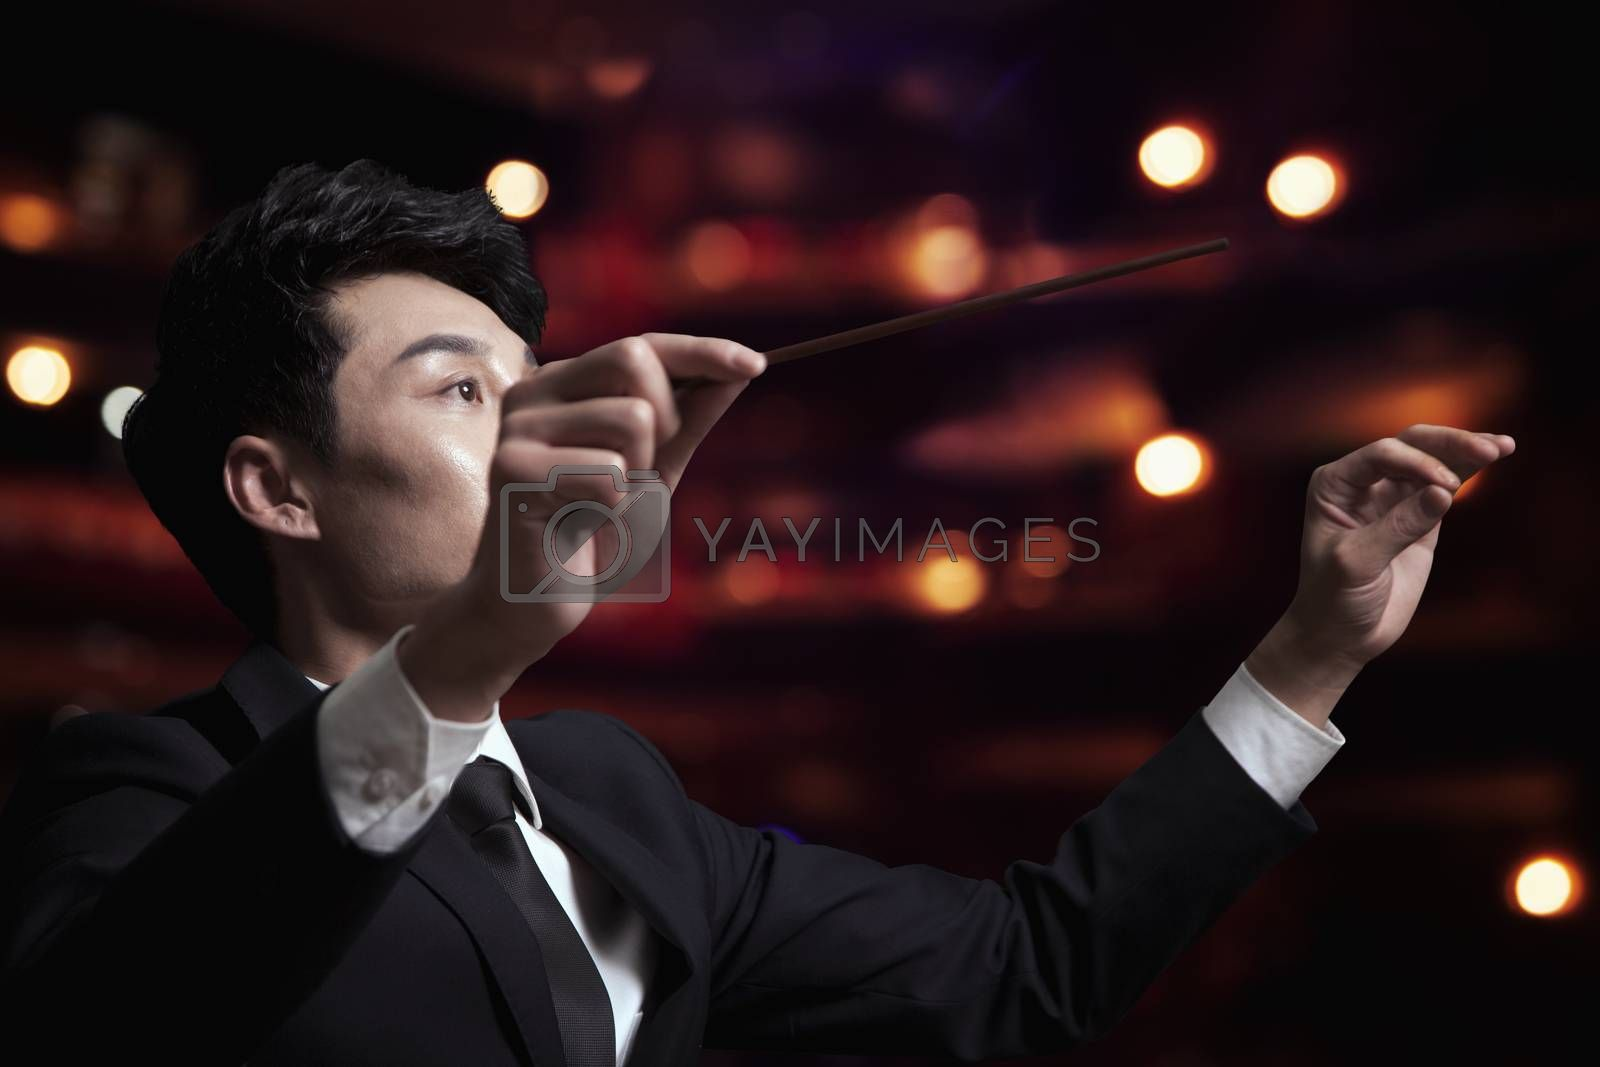 Young conductor with baton raised at a performance  by XiXinXing